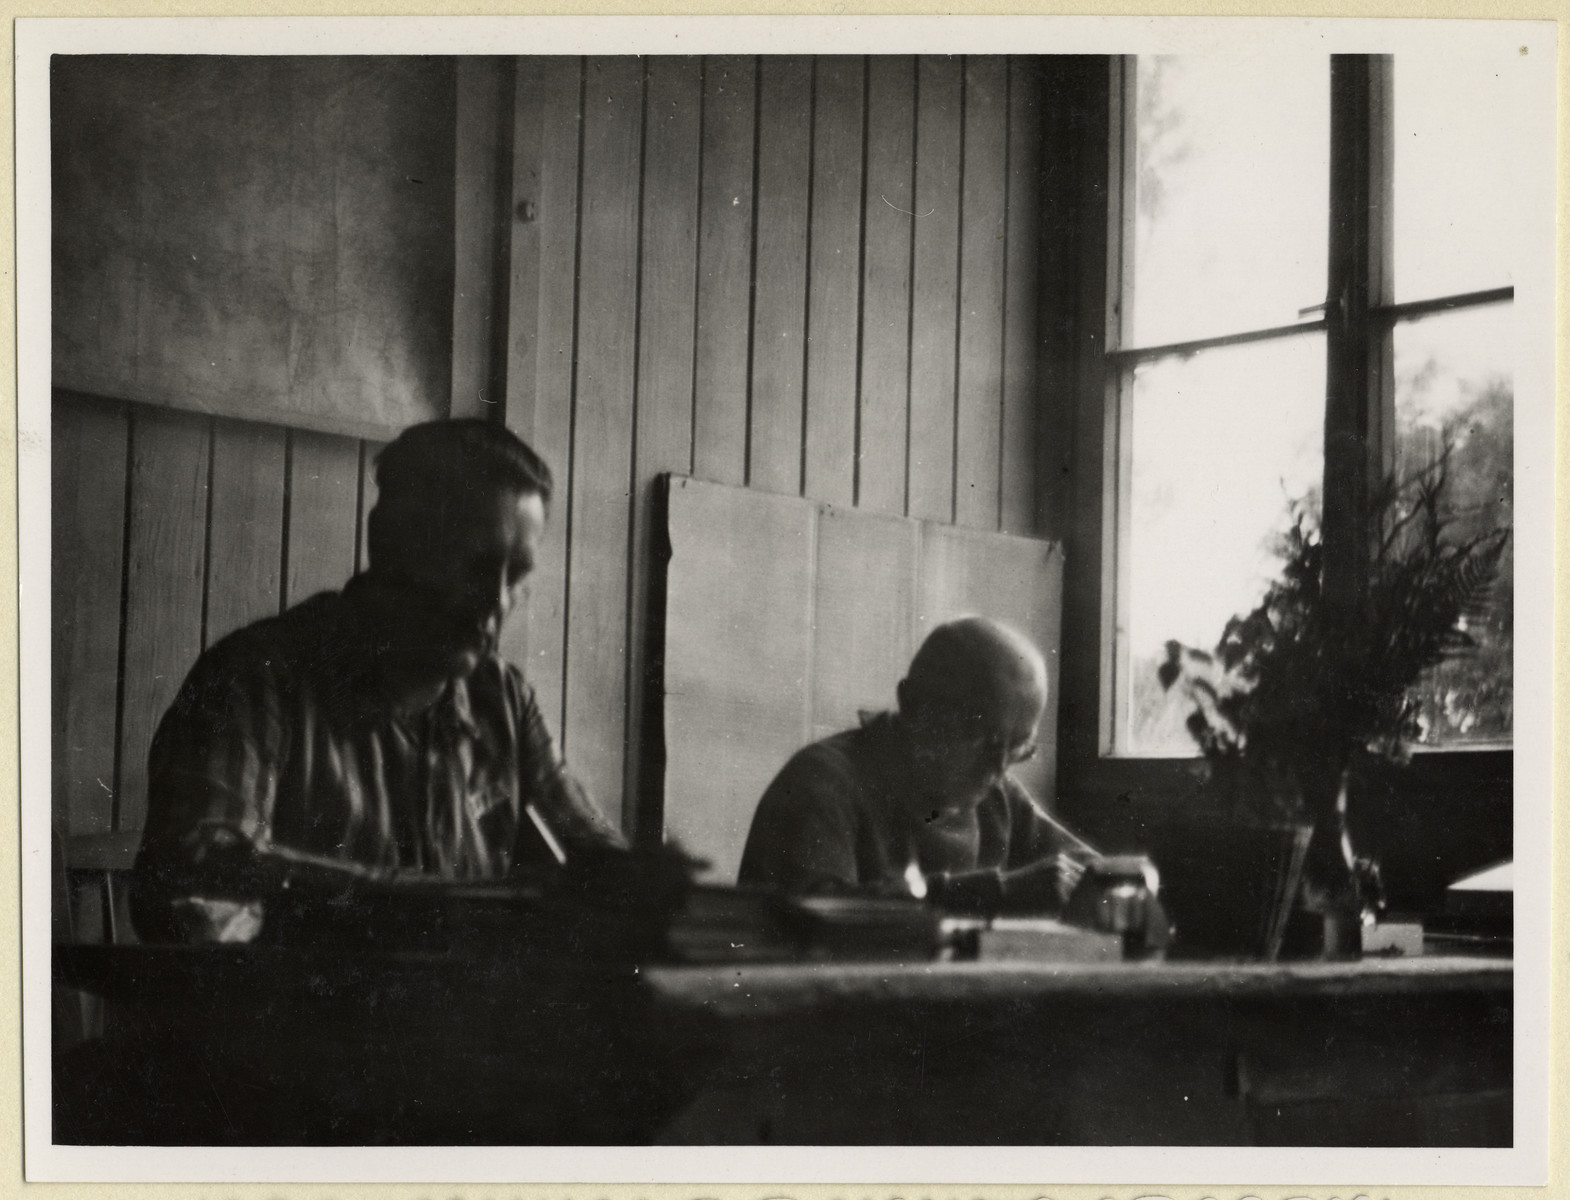 Czech political prisoners work in an office in the Dachau concentration camp.  Seated on the right is the priest, Dr. Frantisek Nemec.  The photograph was taken by Karel Kasak and developed by Maria Seidenberger.